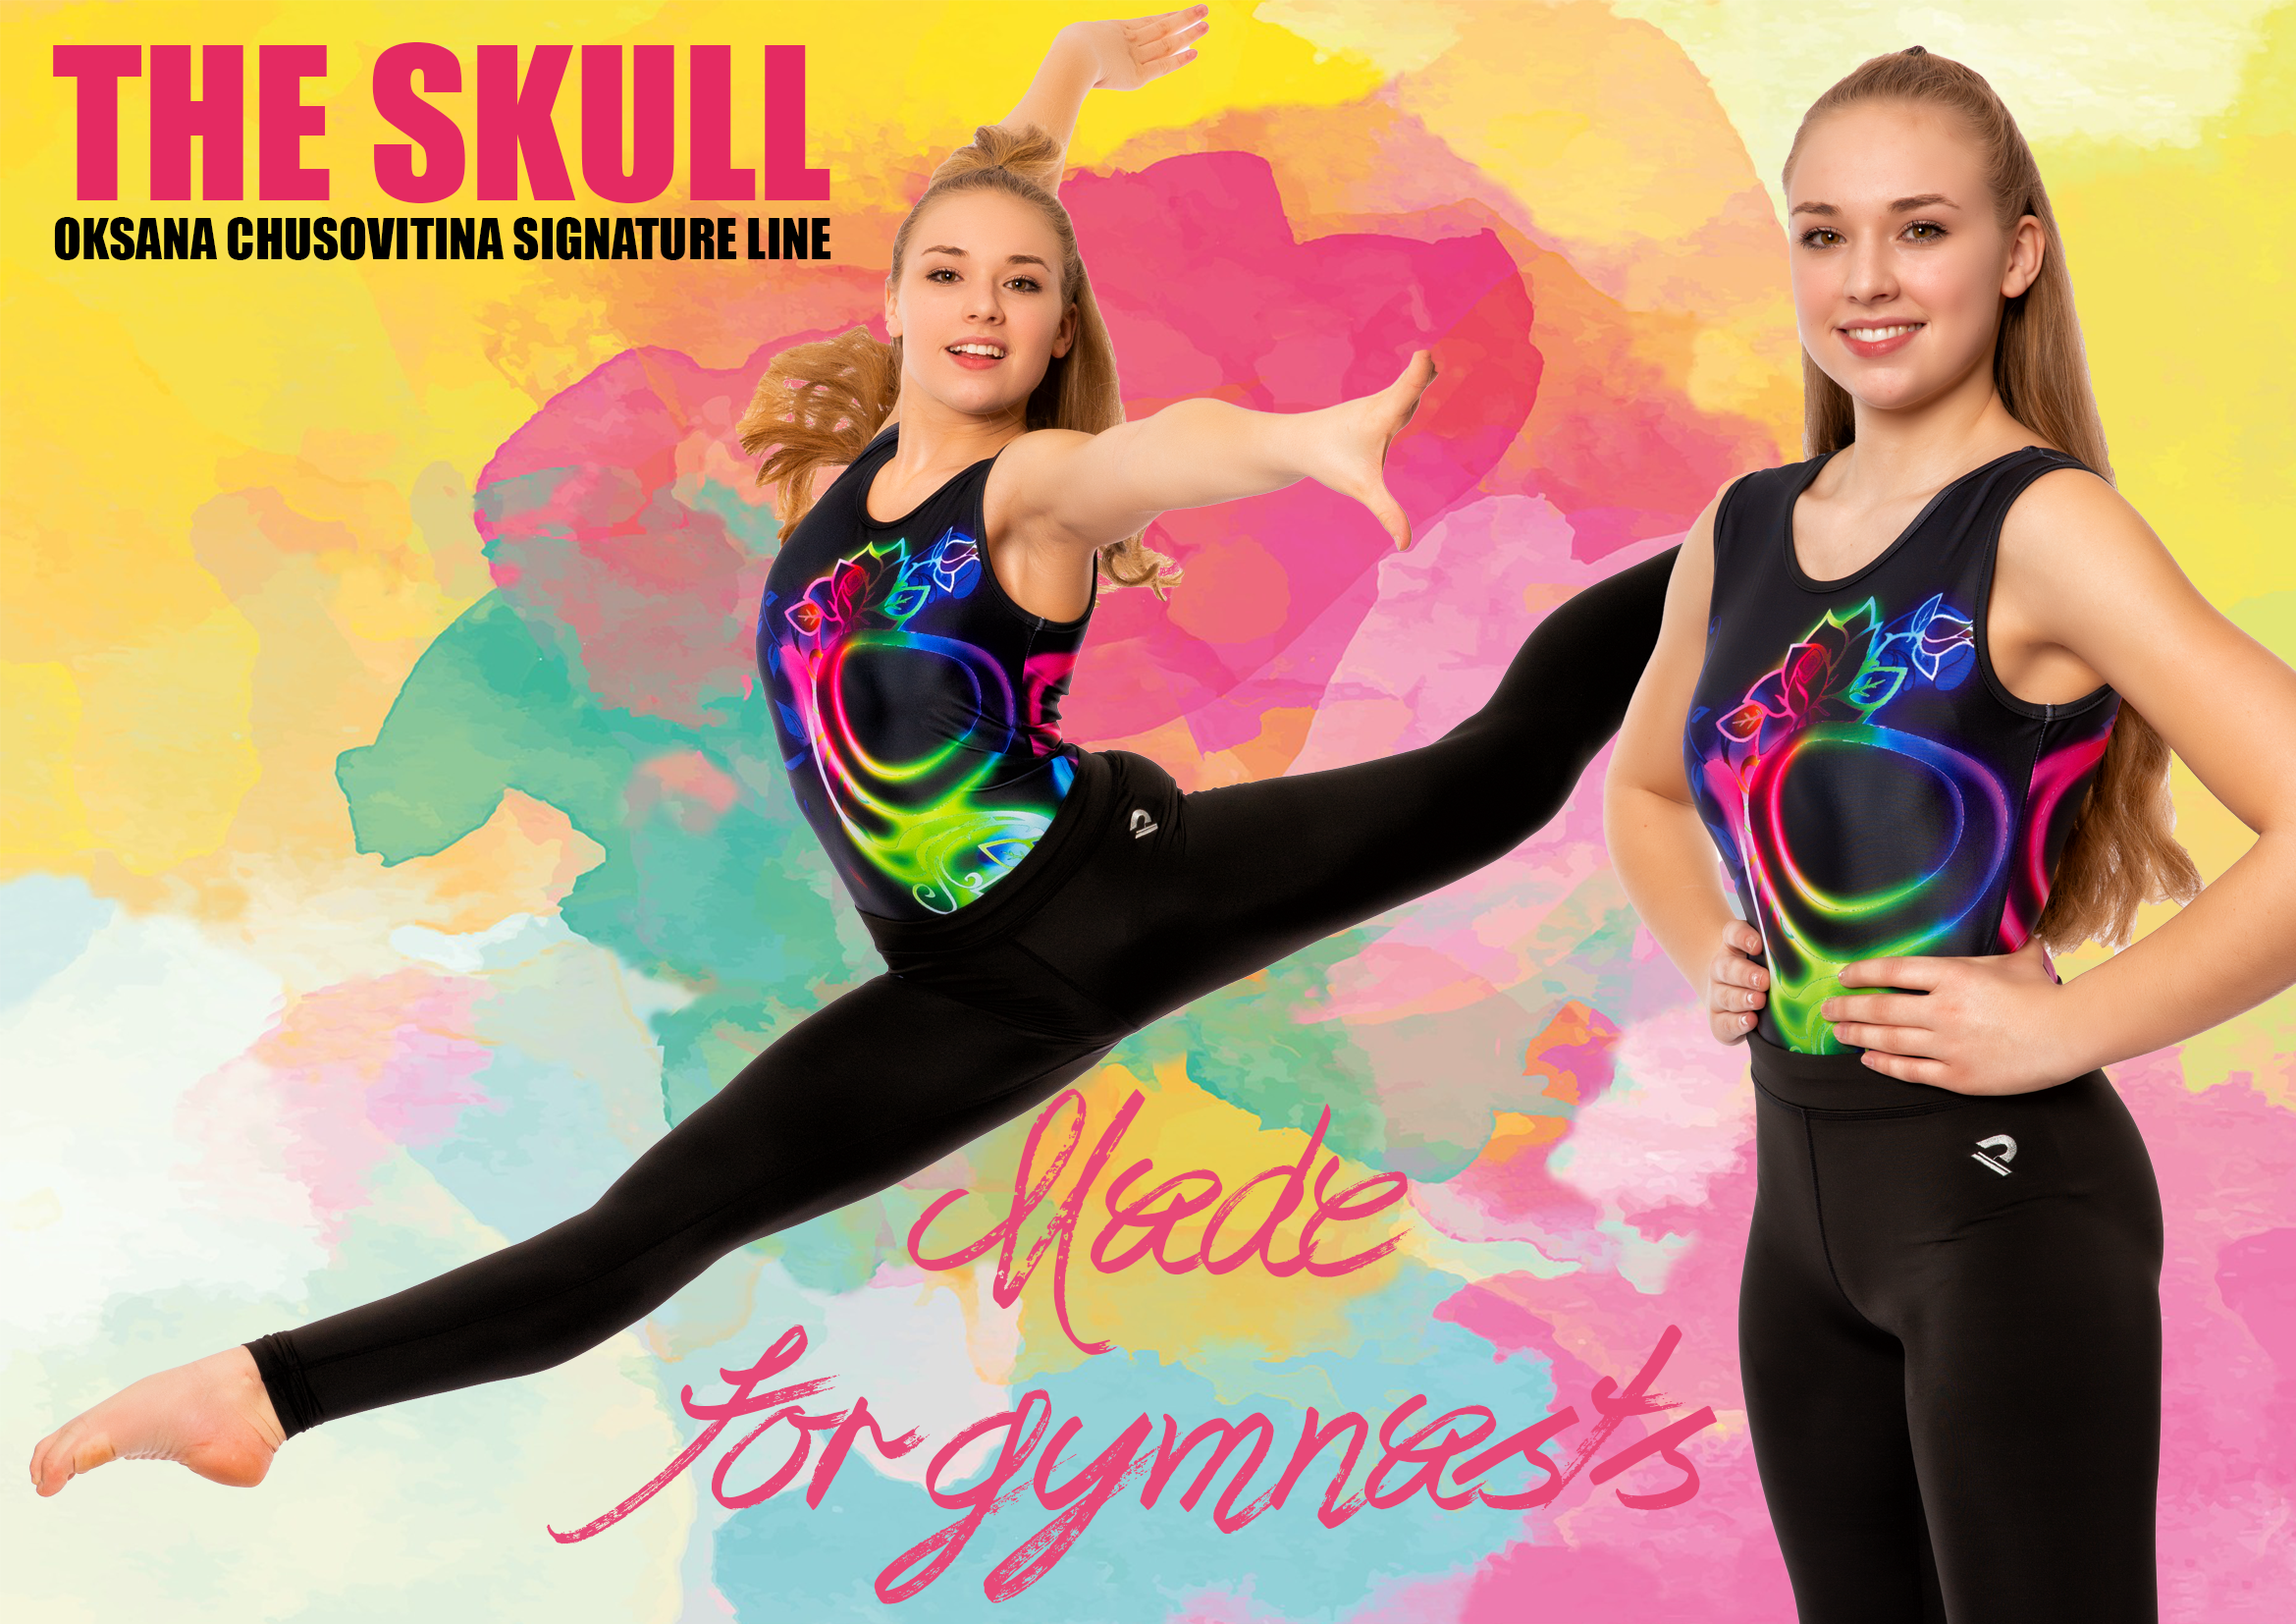 OKSANA CHUSOVITINASIGANTURE LINE - Ladys and Gentleman!We have the Incredible Signature Line from OKSANA CHUSOVITINA Olympian Gymnast and Guinessbook Worldrecord holder.Great Designs with OKSANA CHUSOVITINA Signature on every leotard.You can find all Leotards in our Online Shop.